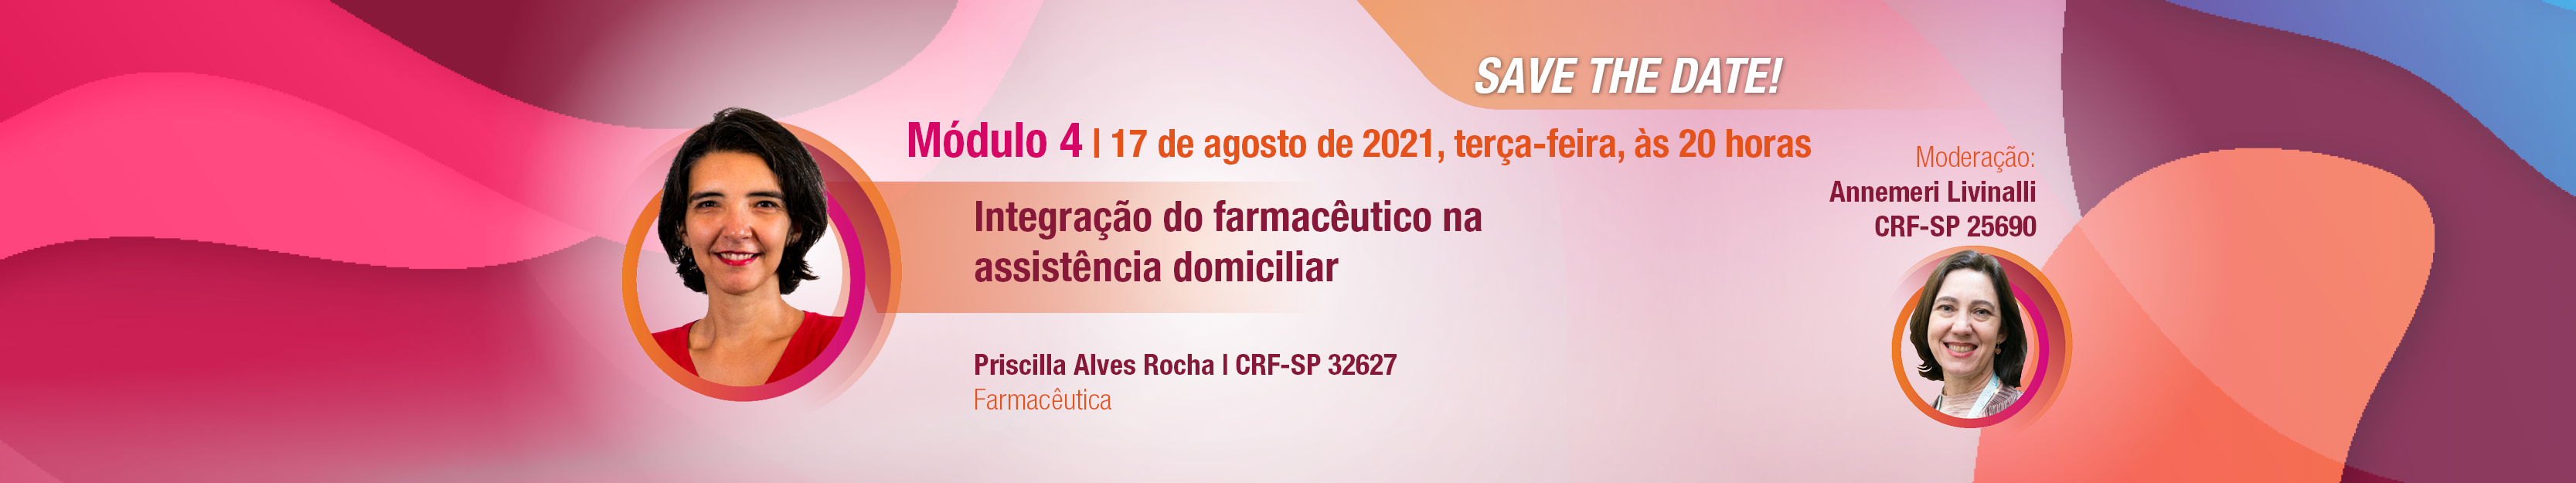 VF2021-banners aulas7